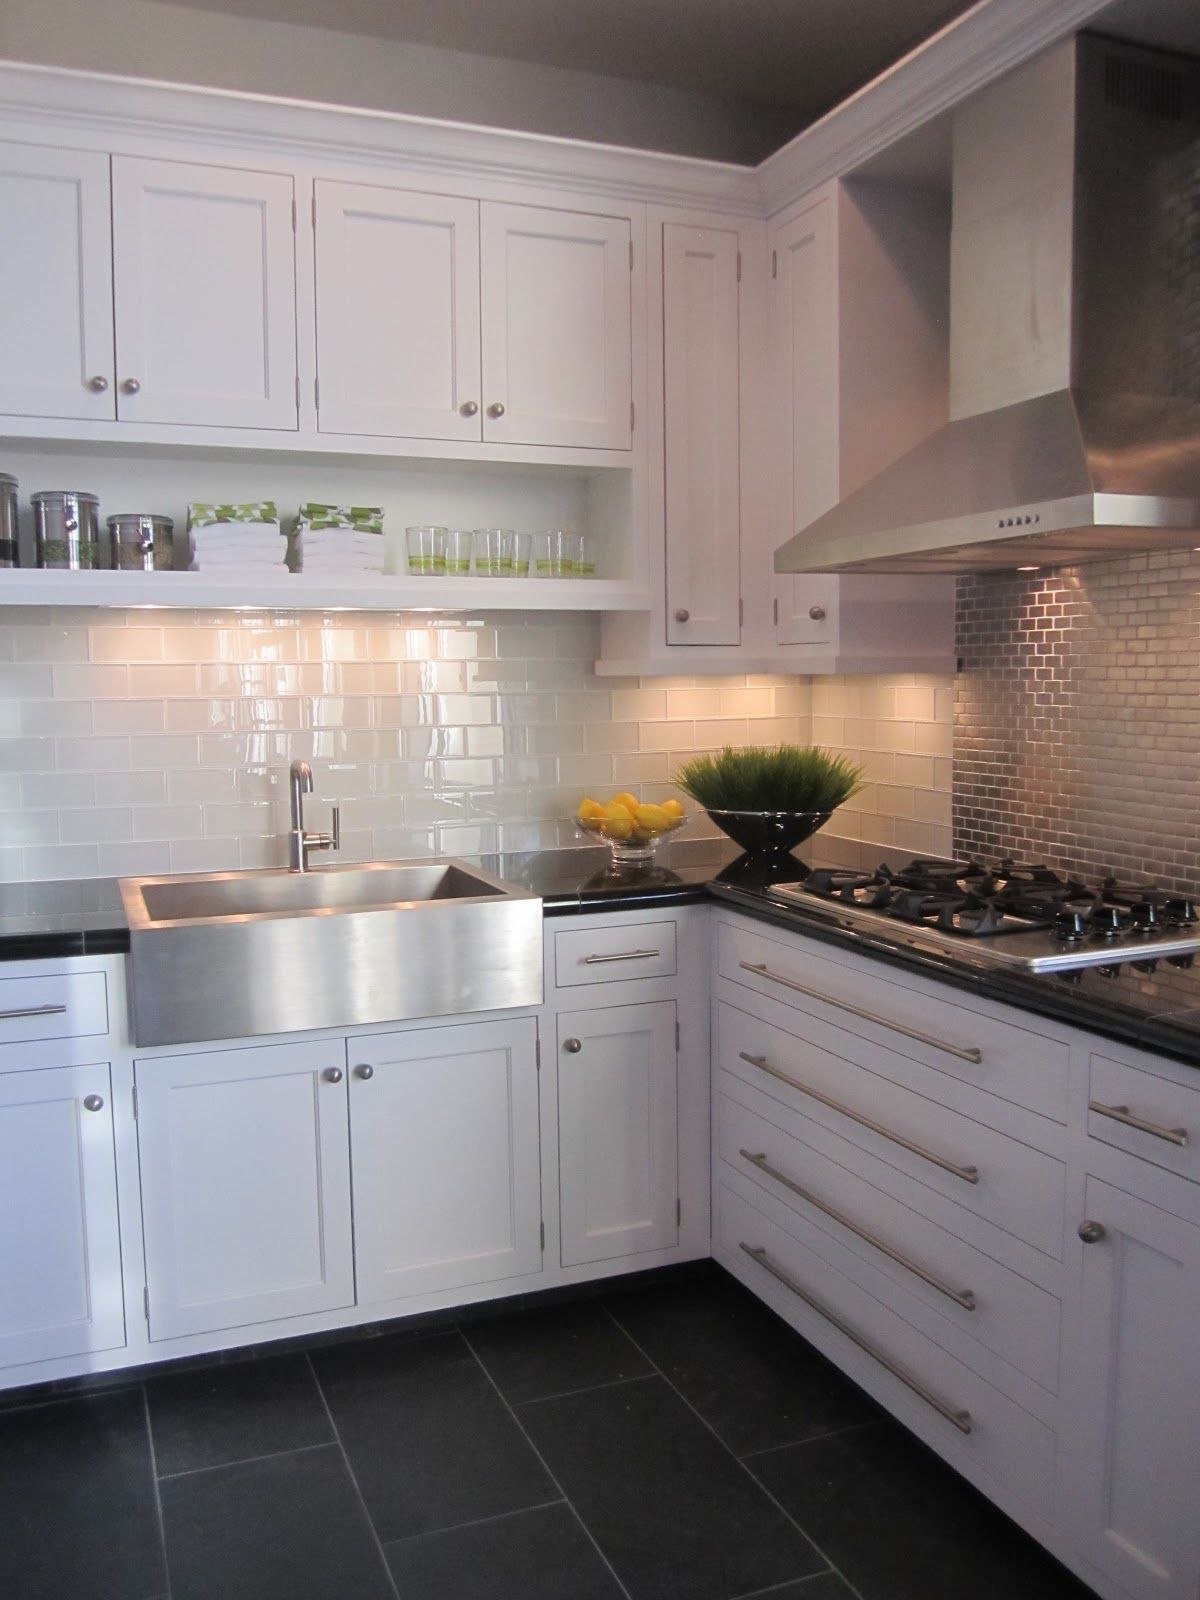 Kitchen Floor Ideas With Dark Cabinets Kitchen White Cabinet Dark Grey Floor Tiles Lovely